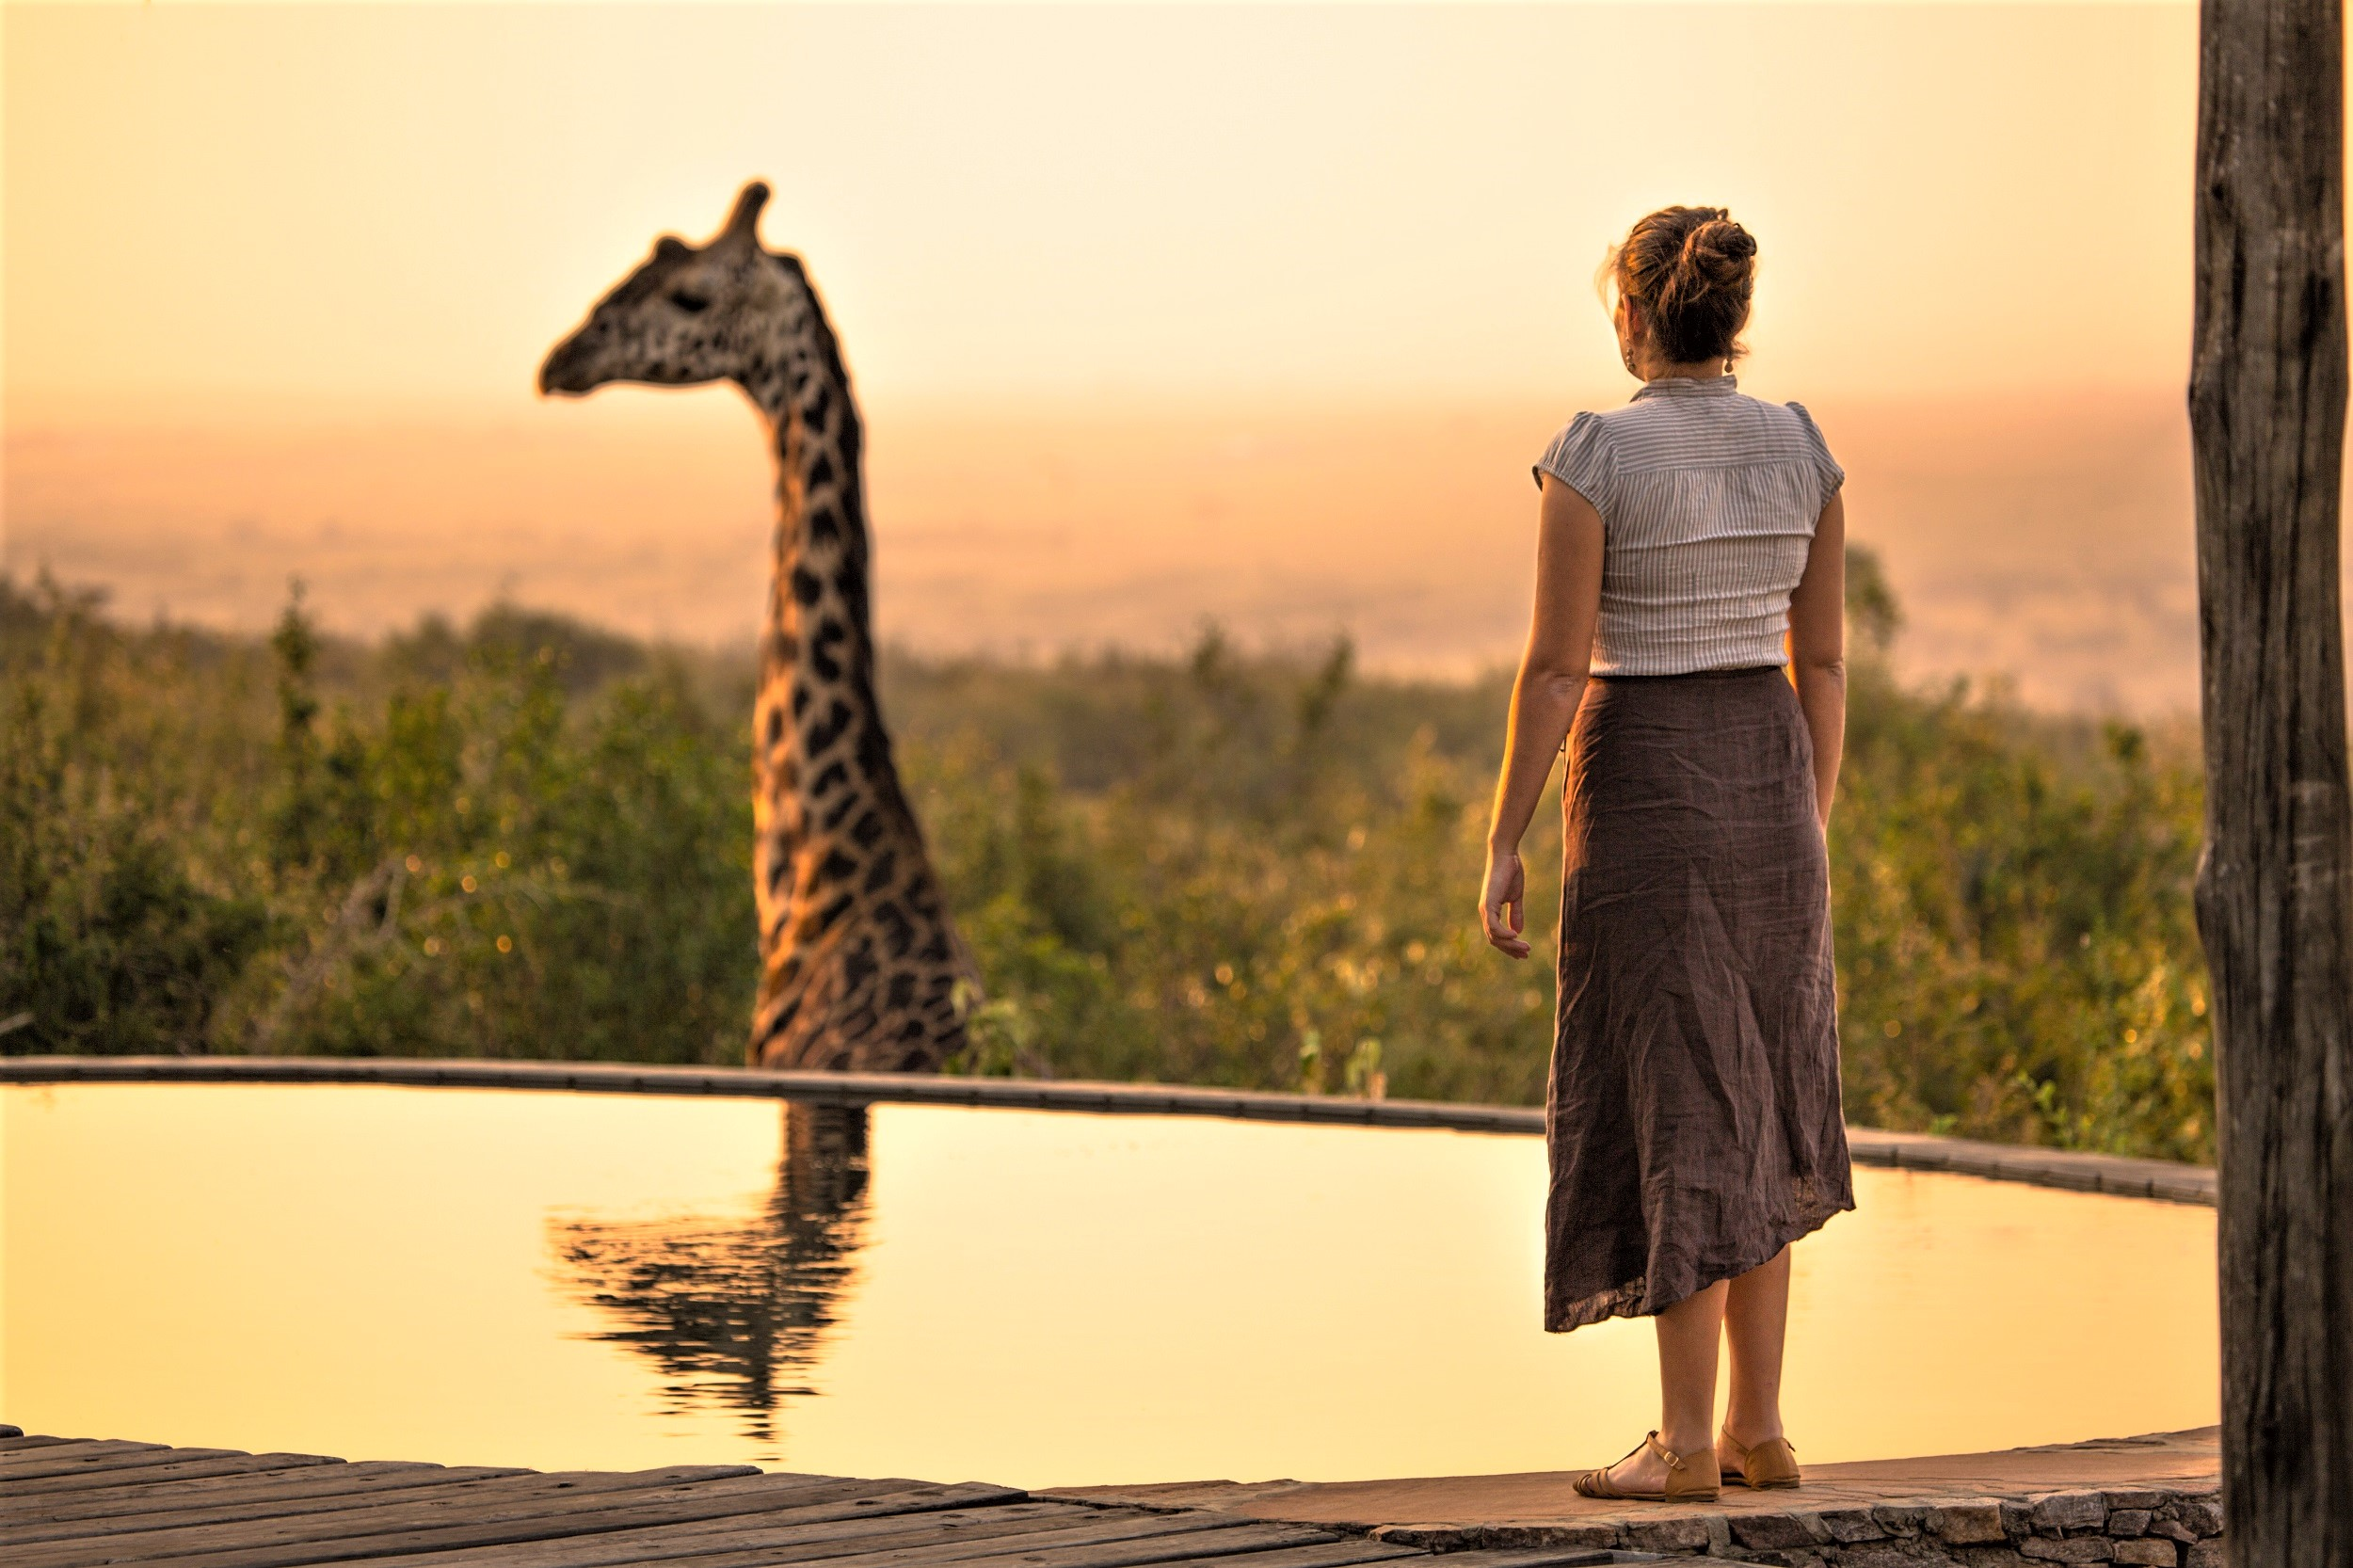 Photo taken at Mara Bushtops in Masai Mara, Kenya. Mara Bushtops conserves a large amount of land outside the national reserve which has resulted in wildlife population increases. This Giraffe, Called Harry comes right in to the resort and was very lucky to capture this special moment of my beautiful girlfriend standing by the swimming pool saying hello to Harry the Giraffe. Image by  Robin Stuart  on  Unsplash